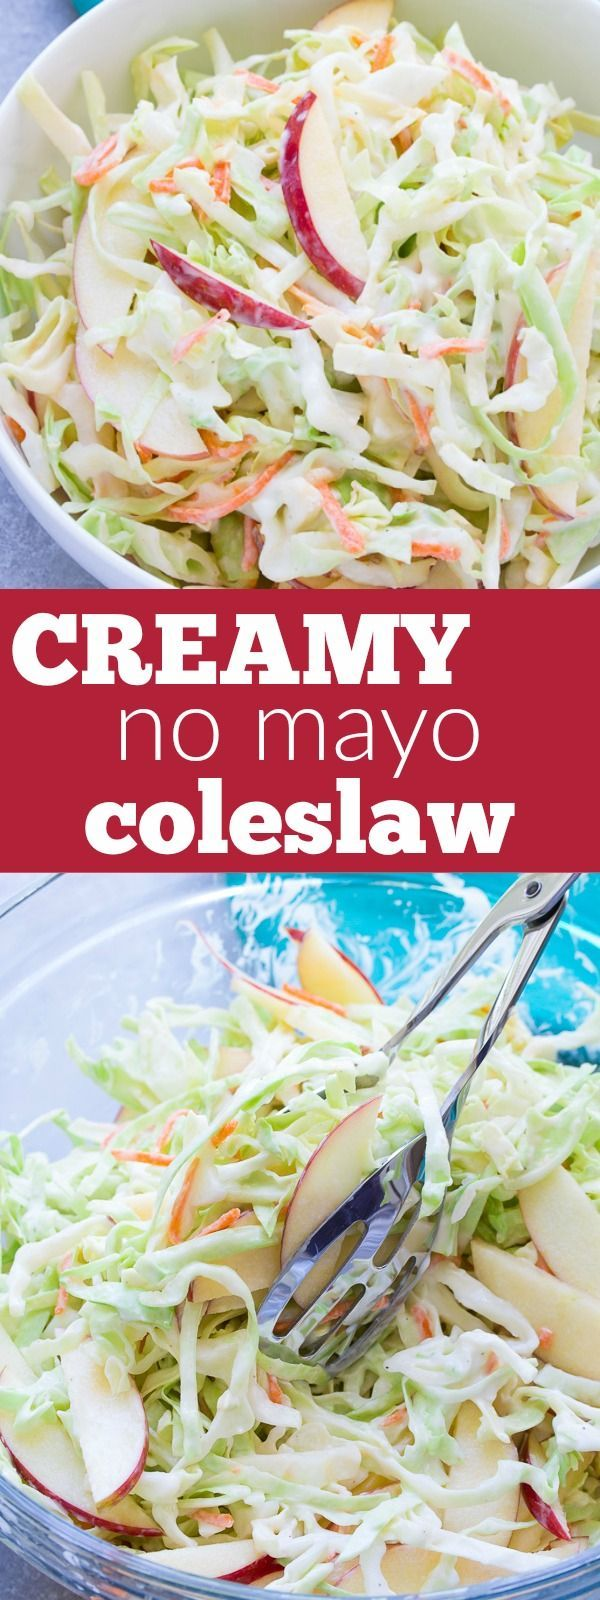 A Creamy No Mayo Coleslaw Made With Greek Yogurt This Healthier Coleslaw Comes Together In Minutes And Yo Coleslaw Recipe Easy Healthy Coleslaw Vegan Coleslaw